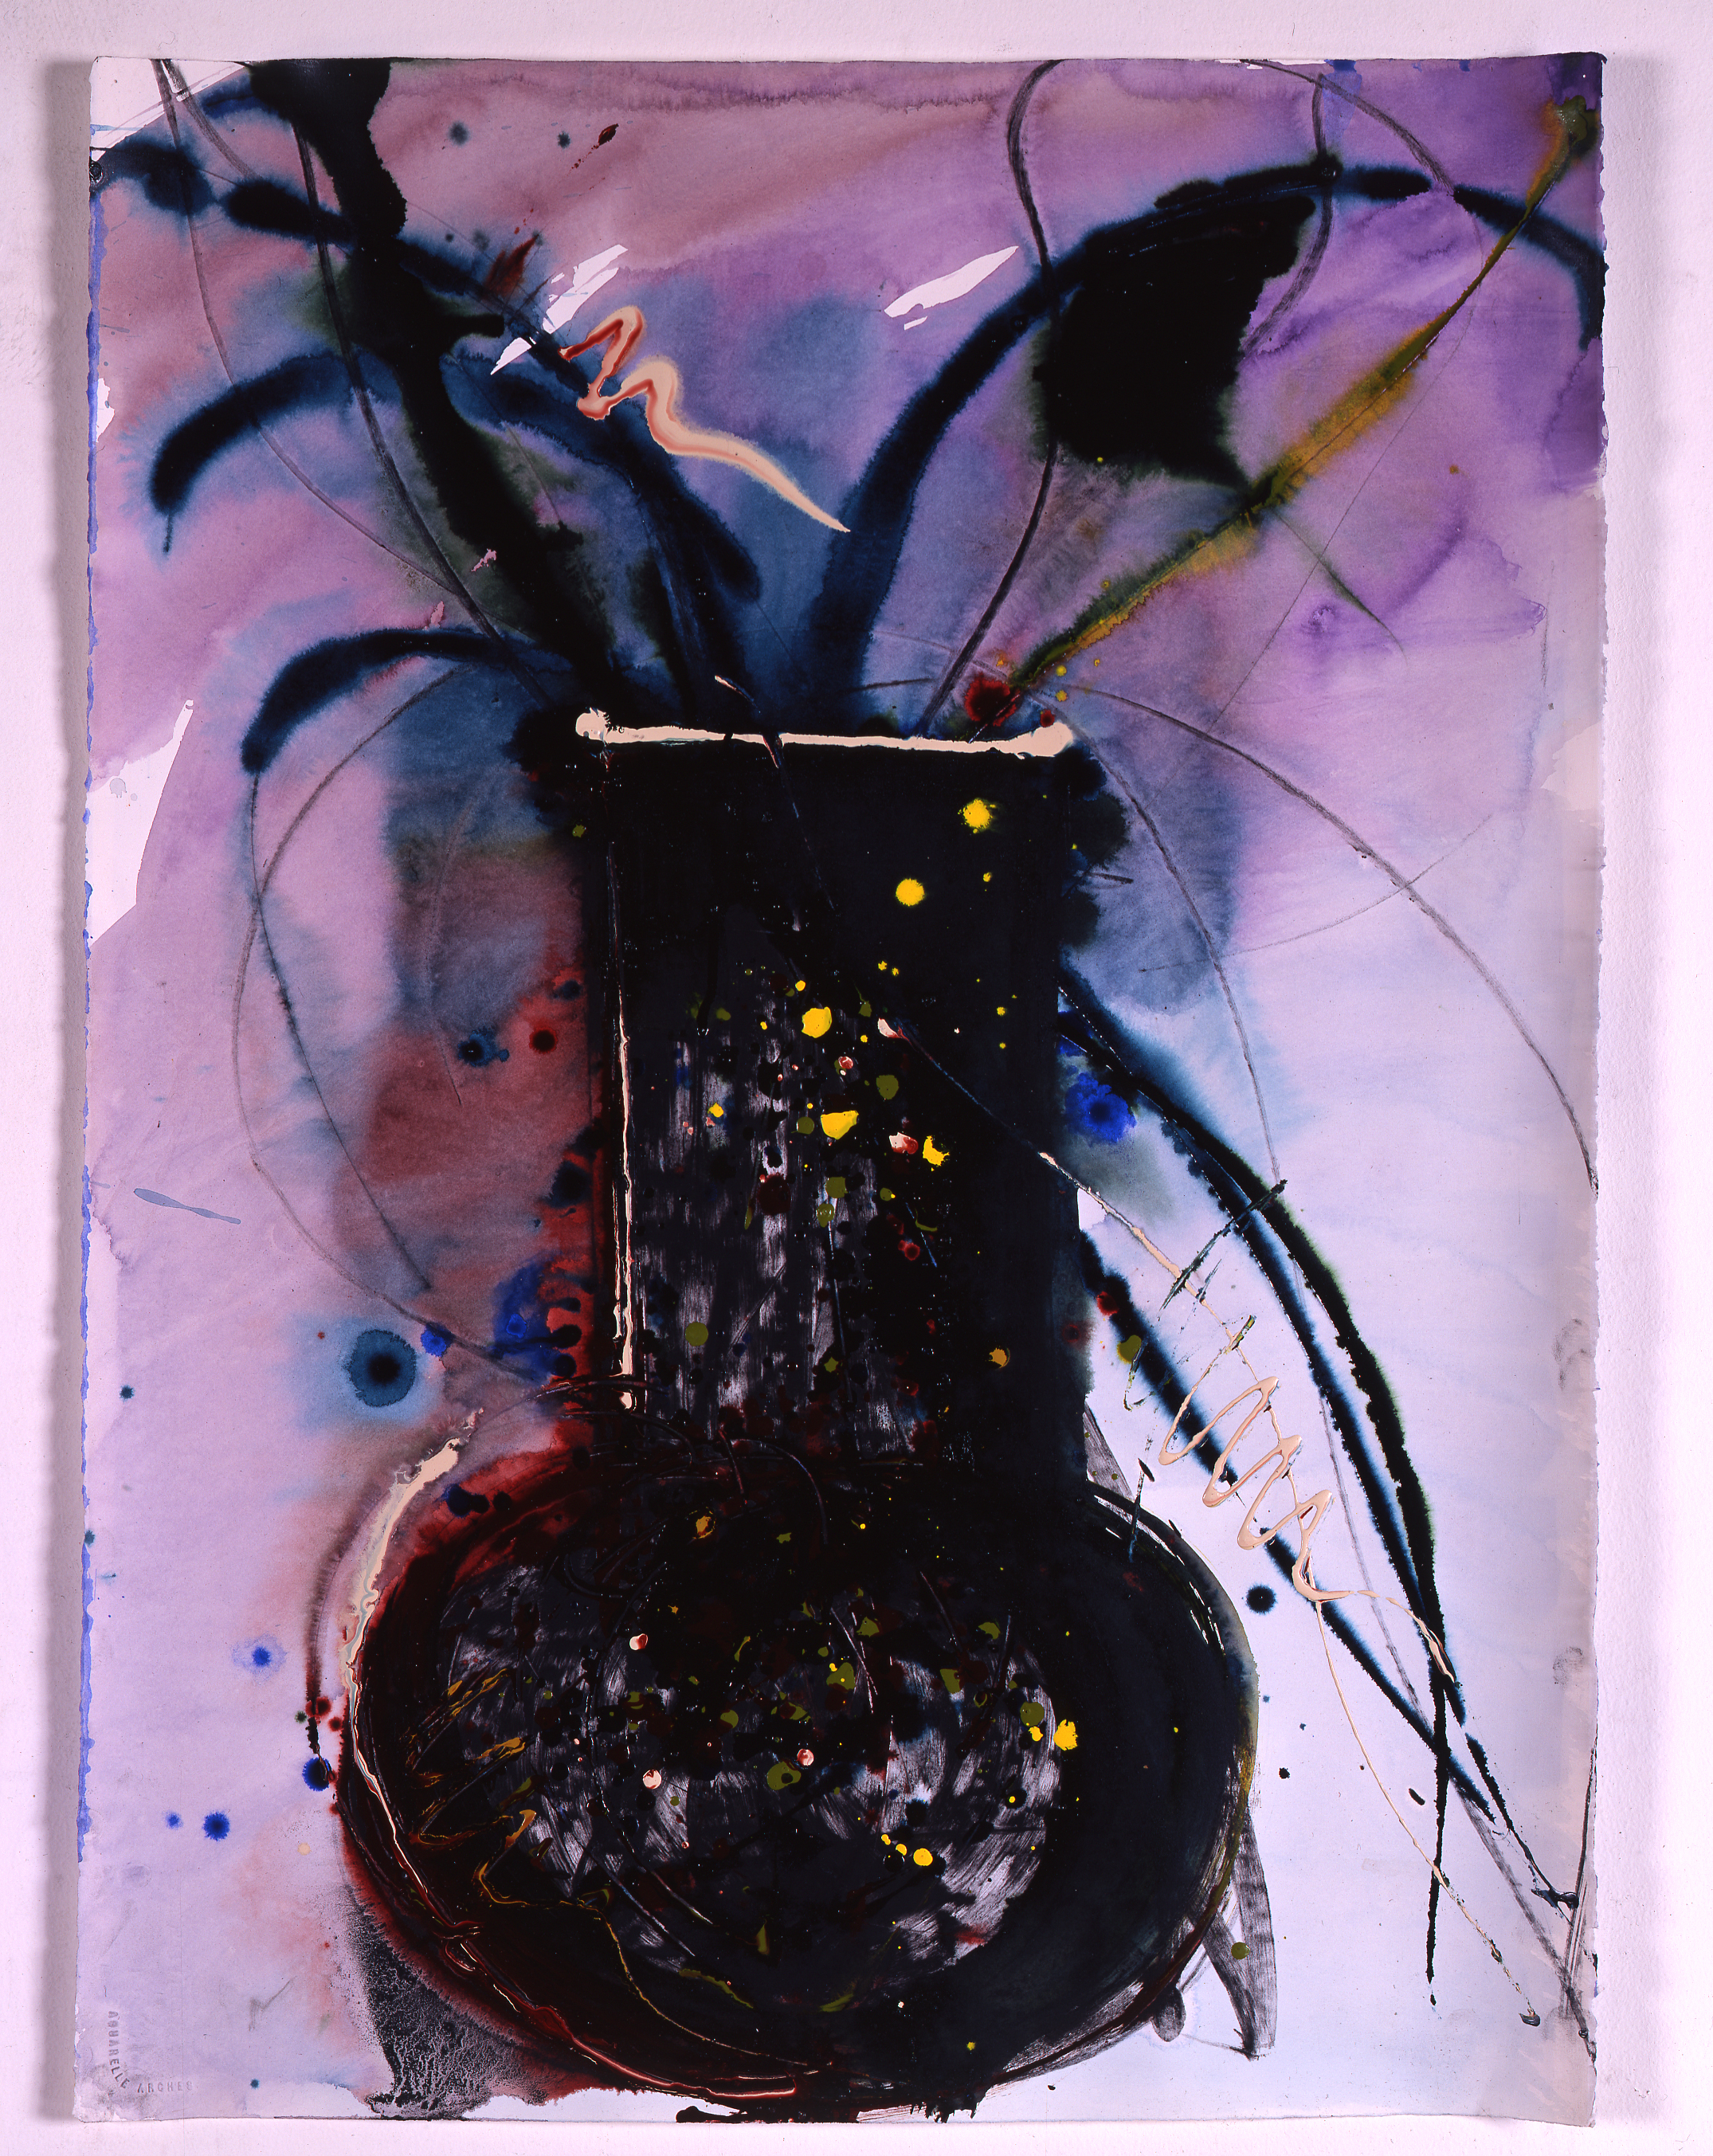 Dale Chihuly, Venetian Drawing (NY Lino Blow), (1992, mixed mediaon paper, 30 x 22 inches), DC.377